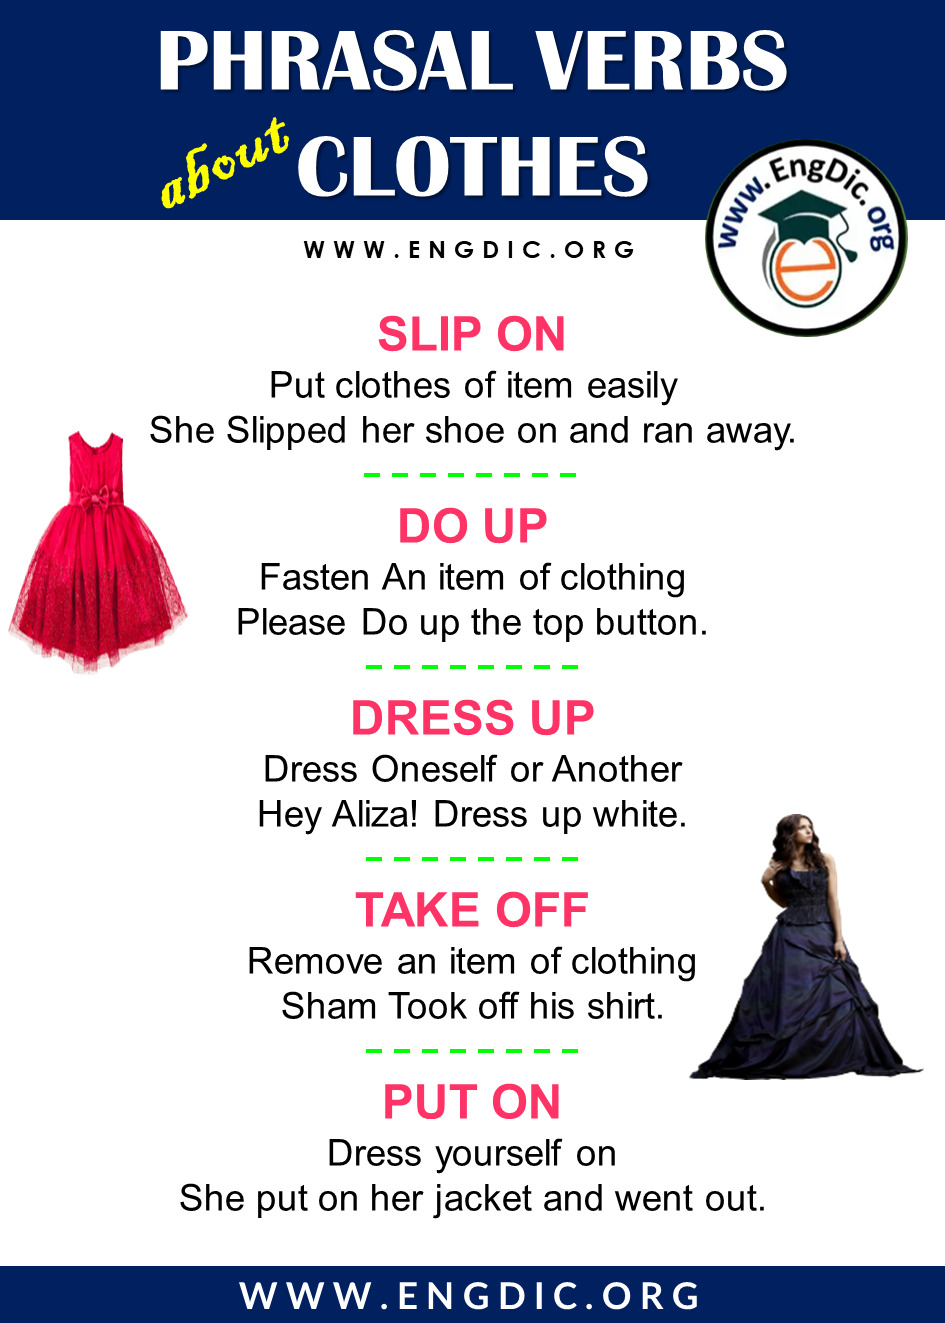 phrasal verbs for clothing